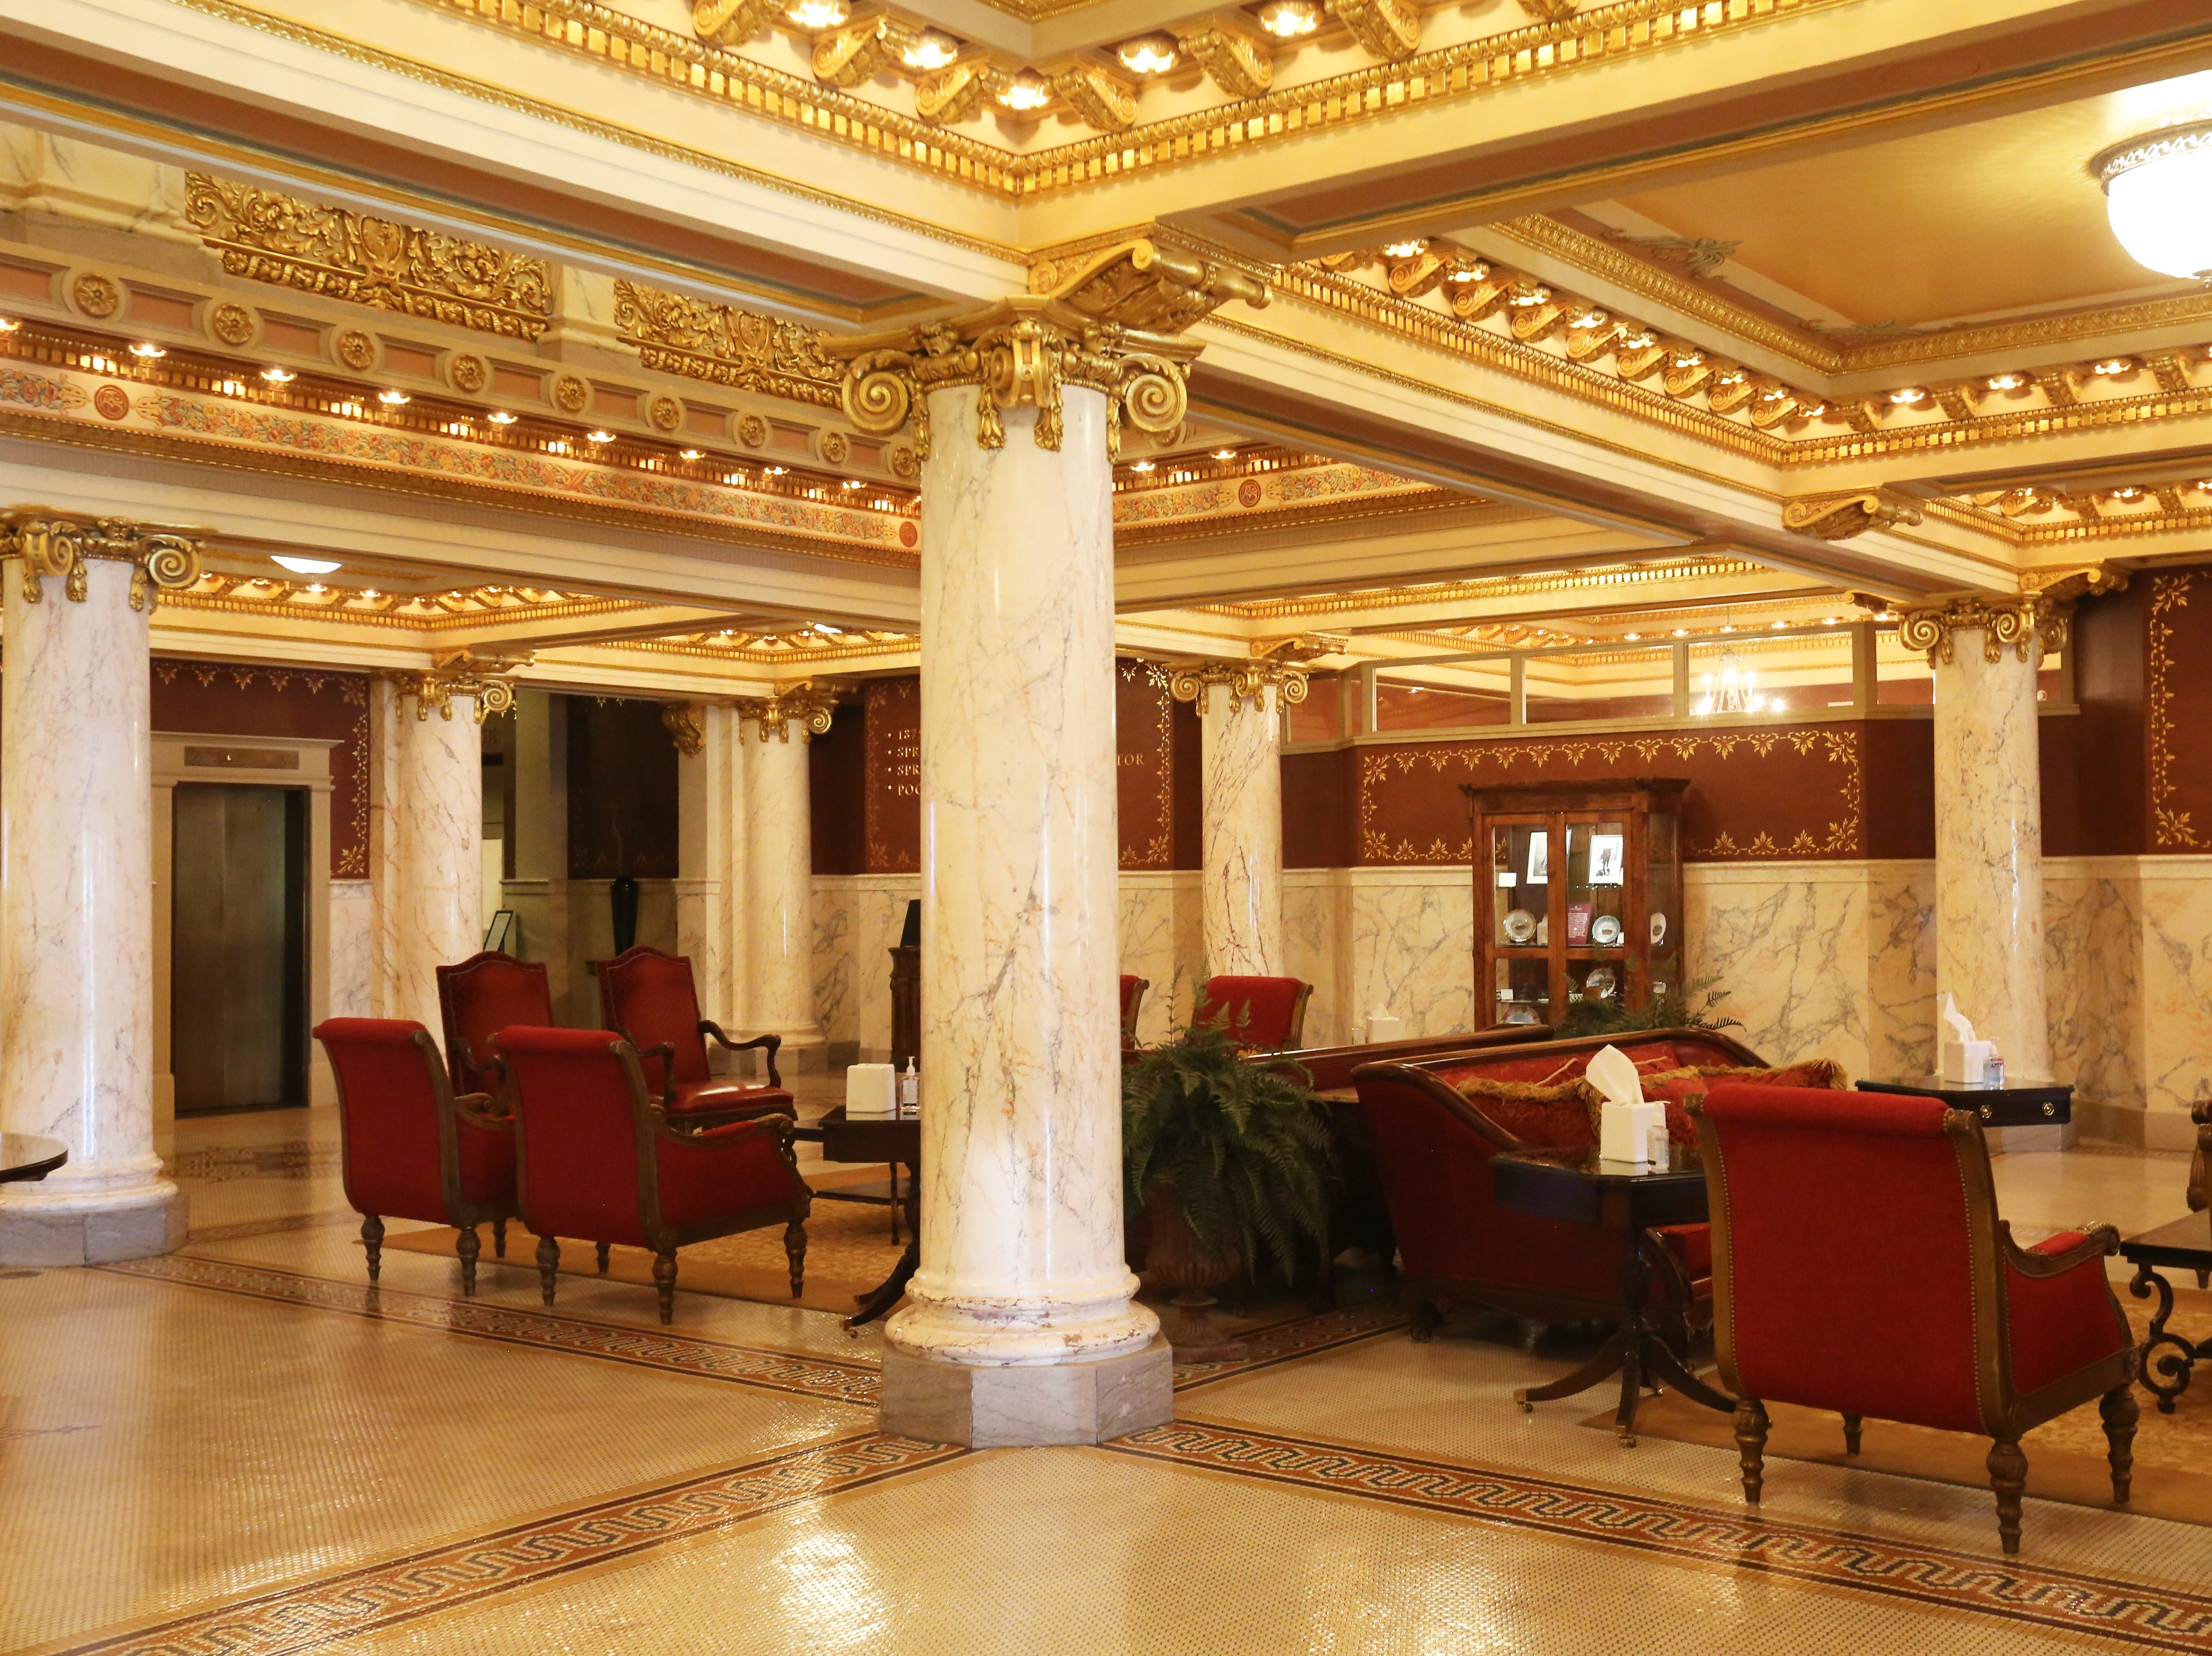 Guest lobby of the French Lick Springs Hotel in 2018.